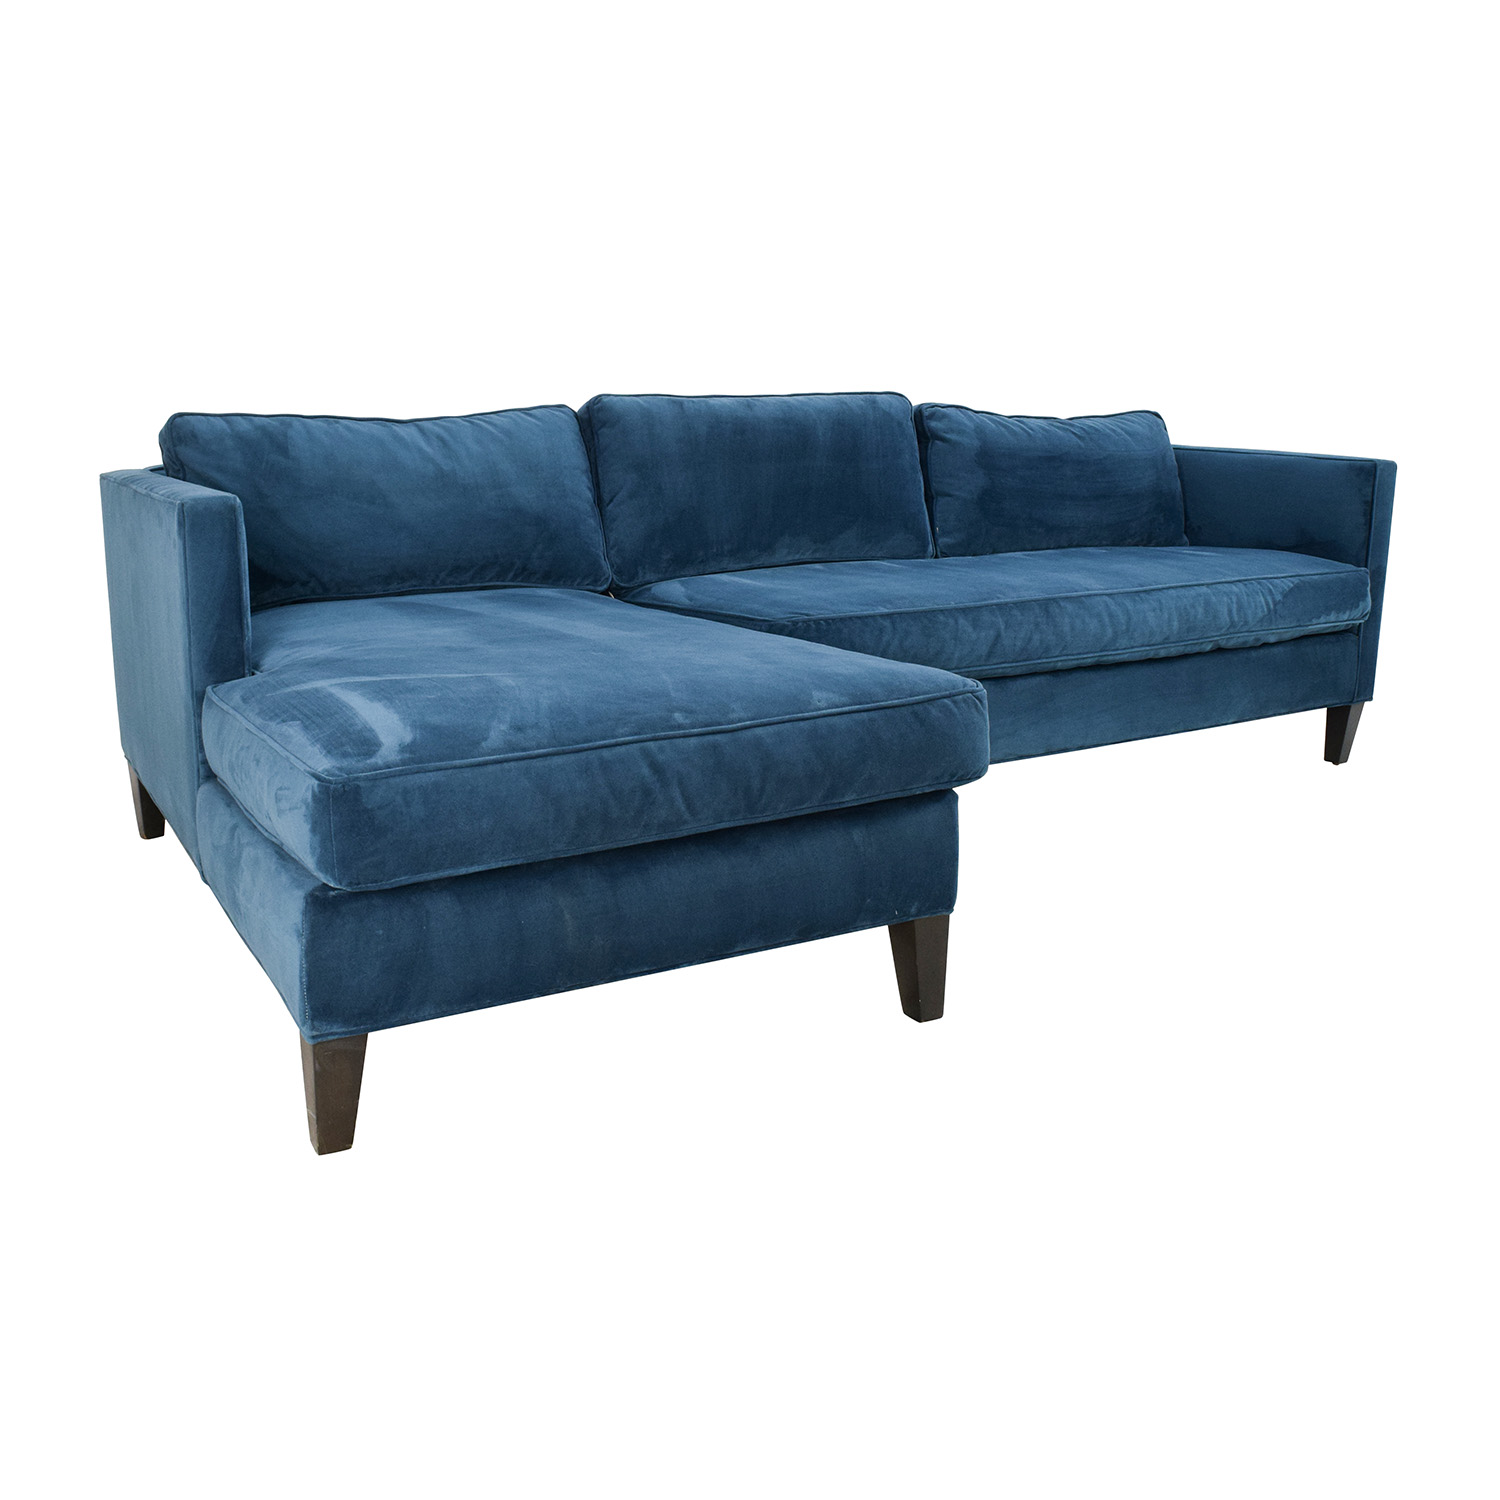 67 Off West Elm West Elm Dunham Sectional Sofa Sofas